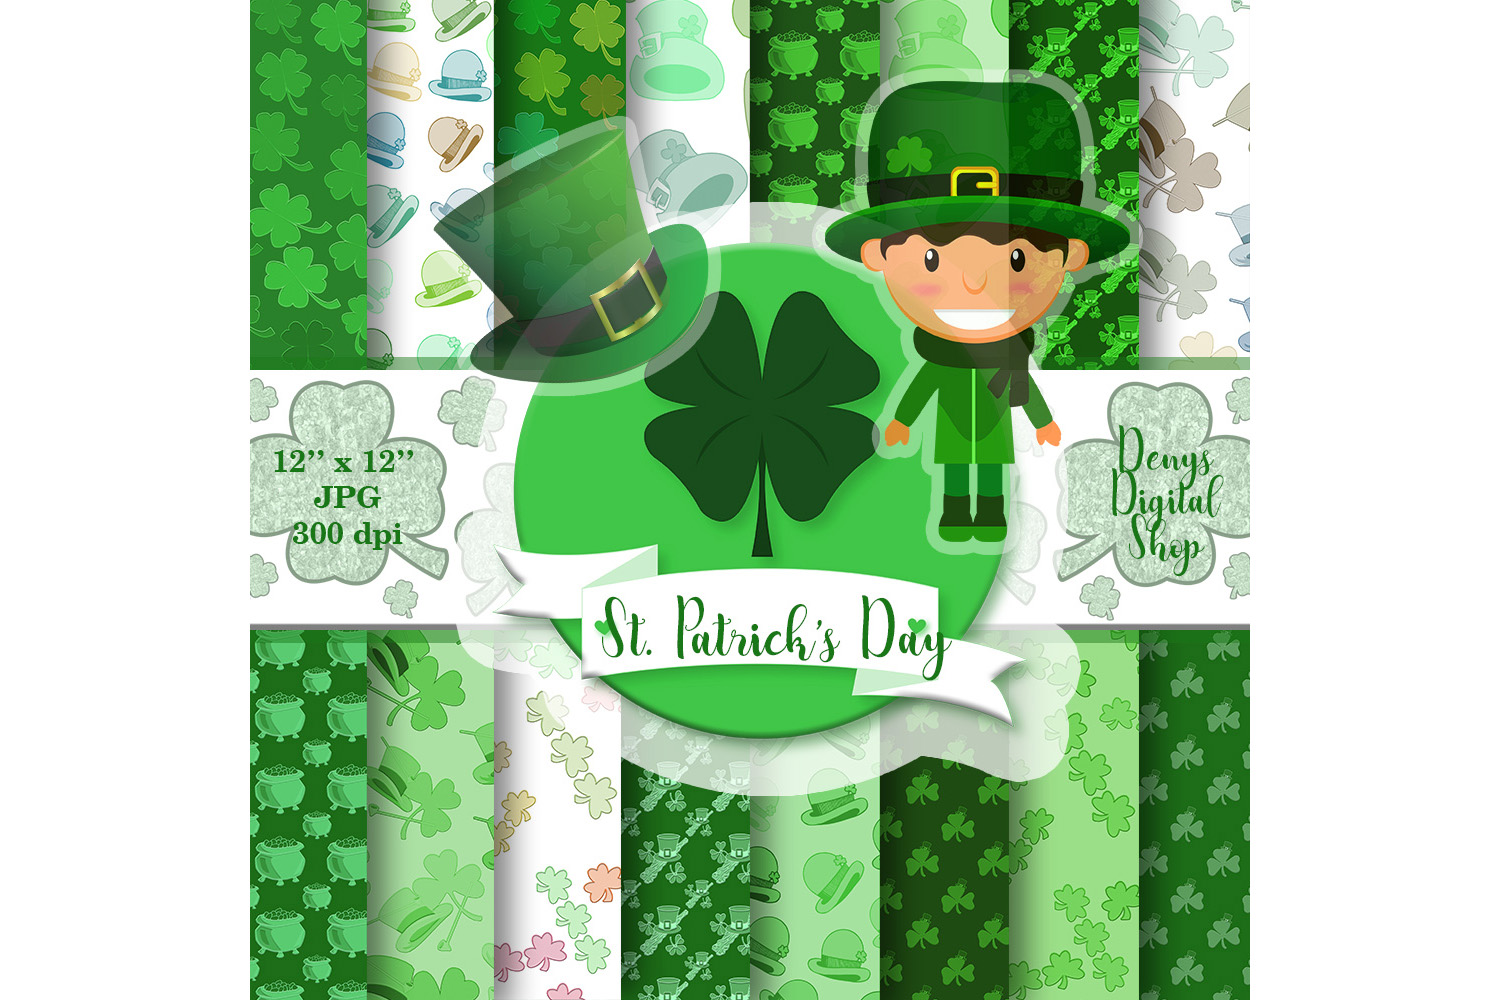 St. Patrick's Day digital paper, St. Patrick's Day, sale,off example image 1